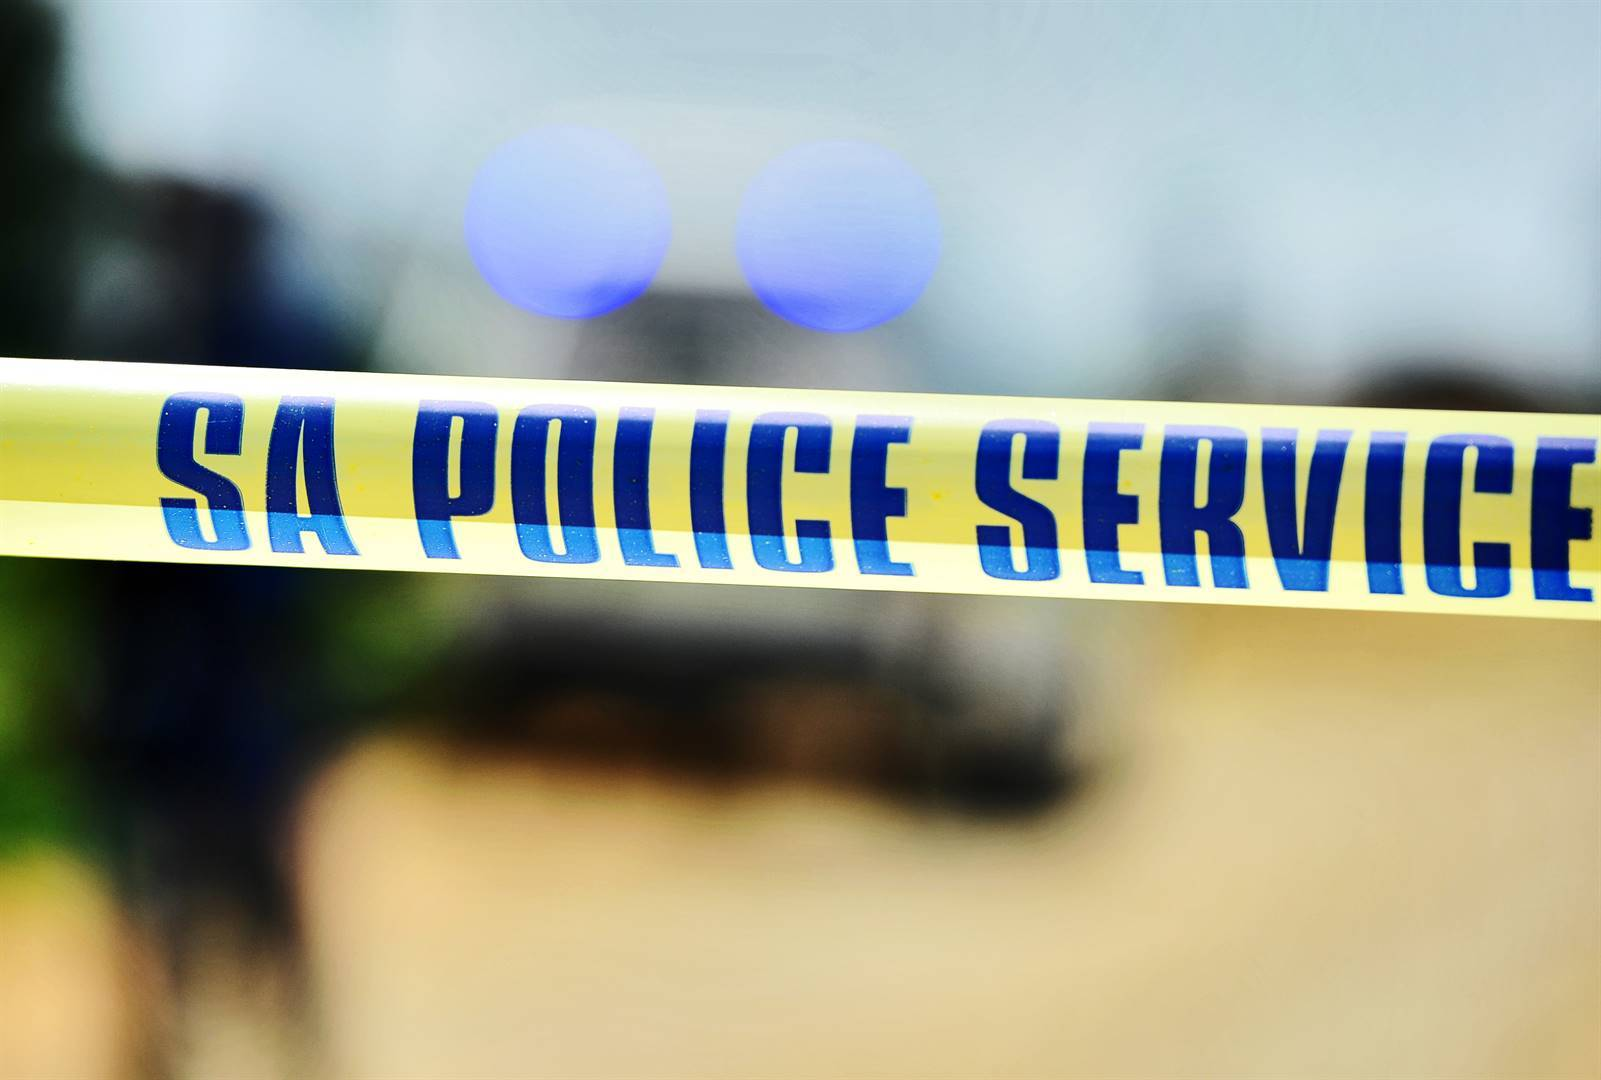 Two men were arrested after a police officer was shot and killed during an armed robbery in Mid-Illovo, near Durban, on TuesdayPHOTO: SOURCED